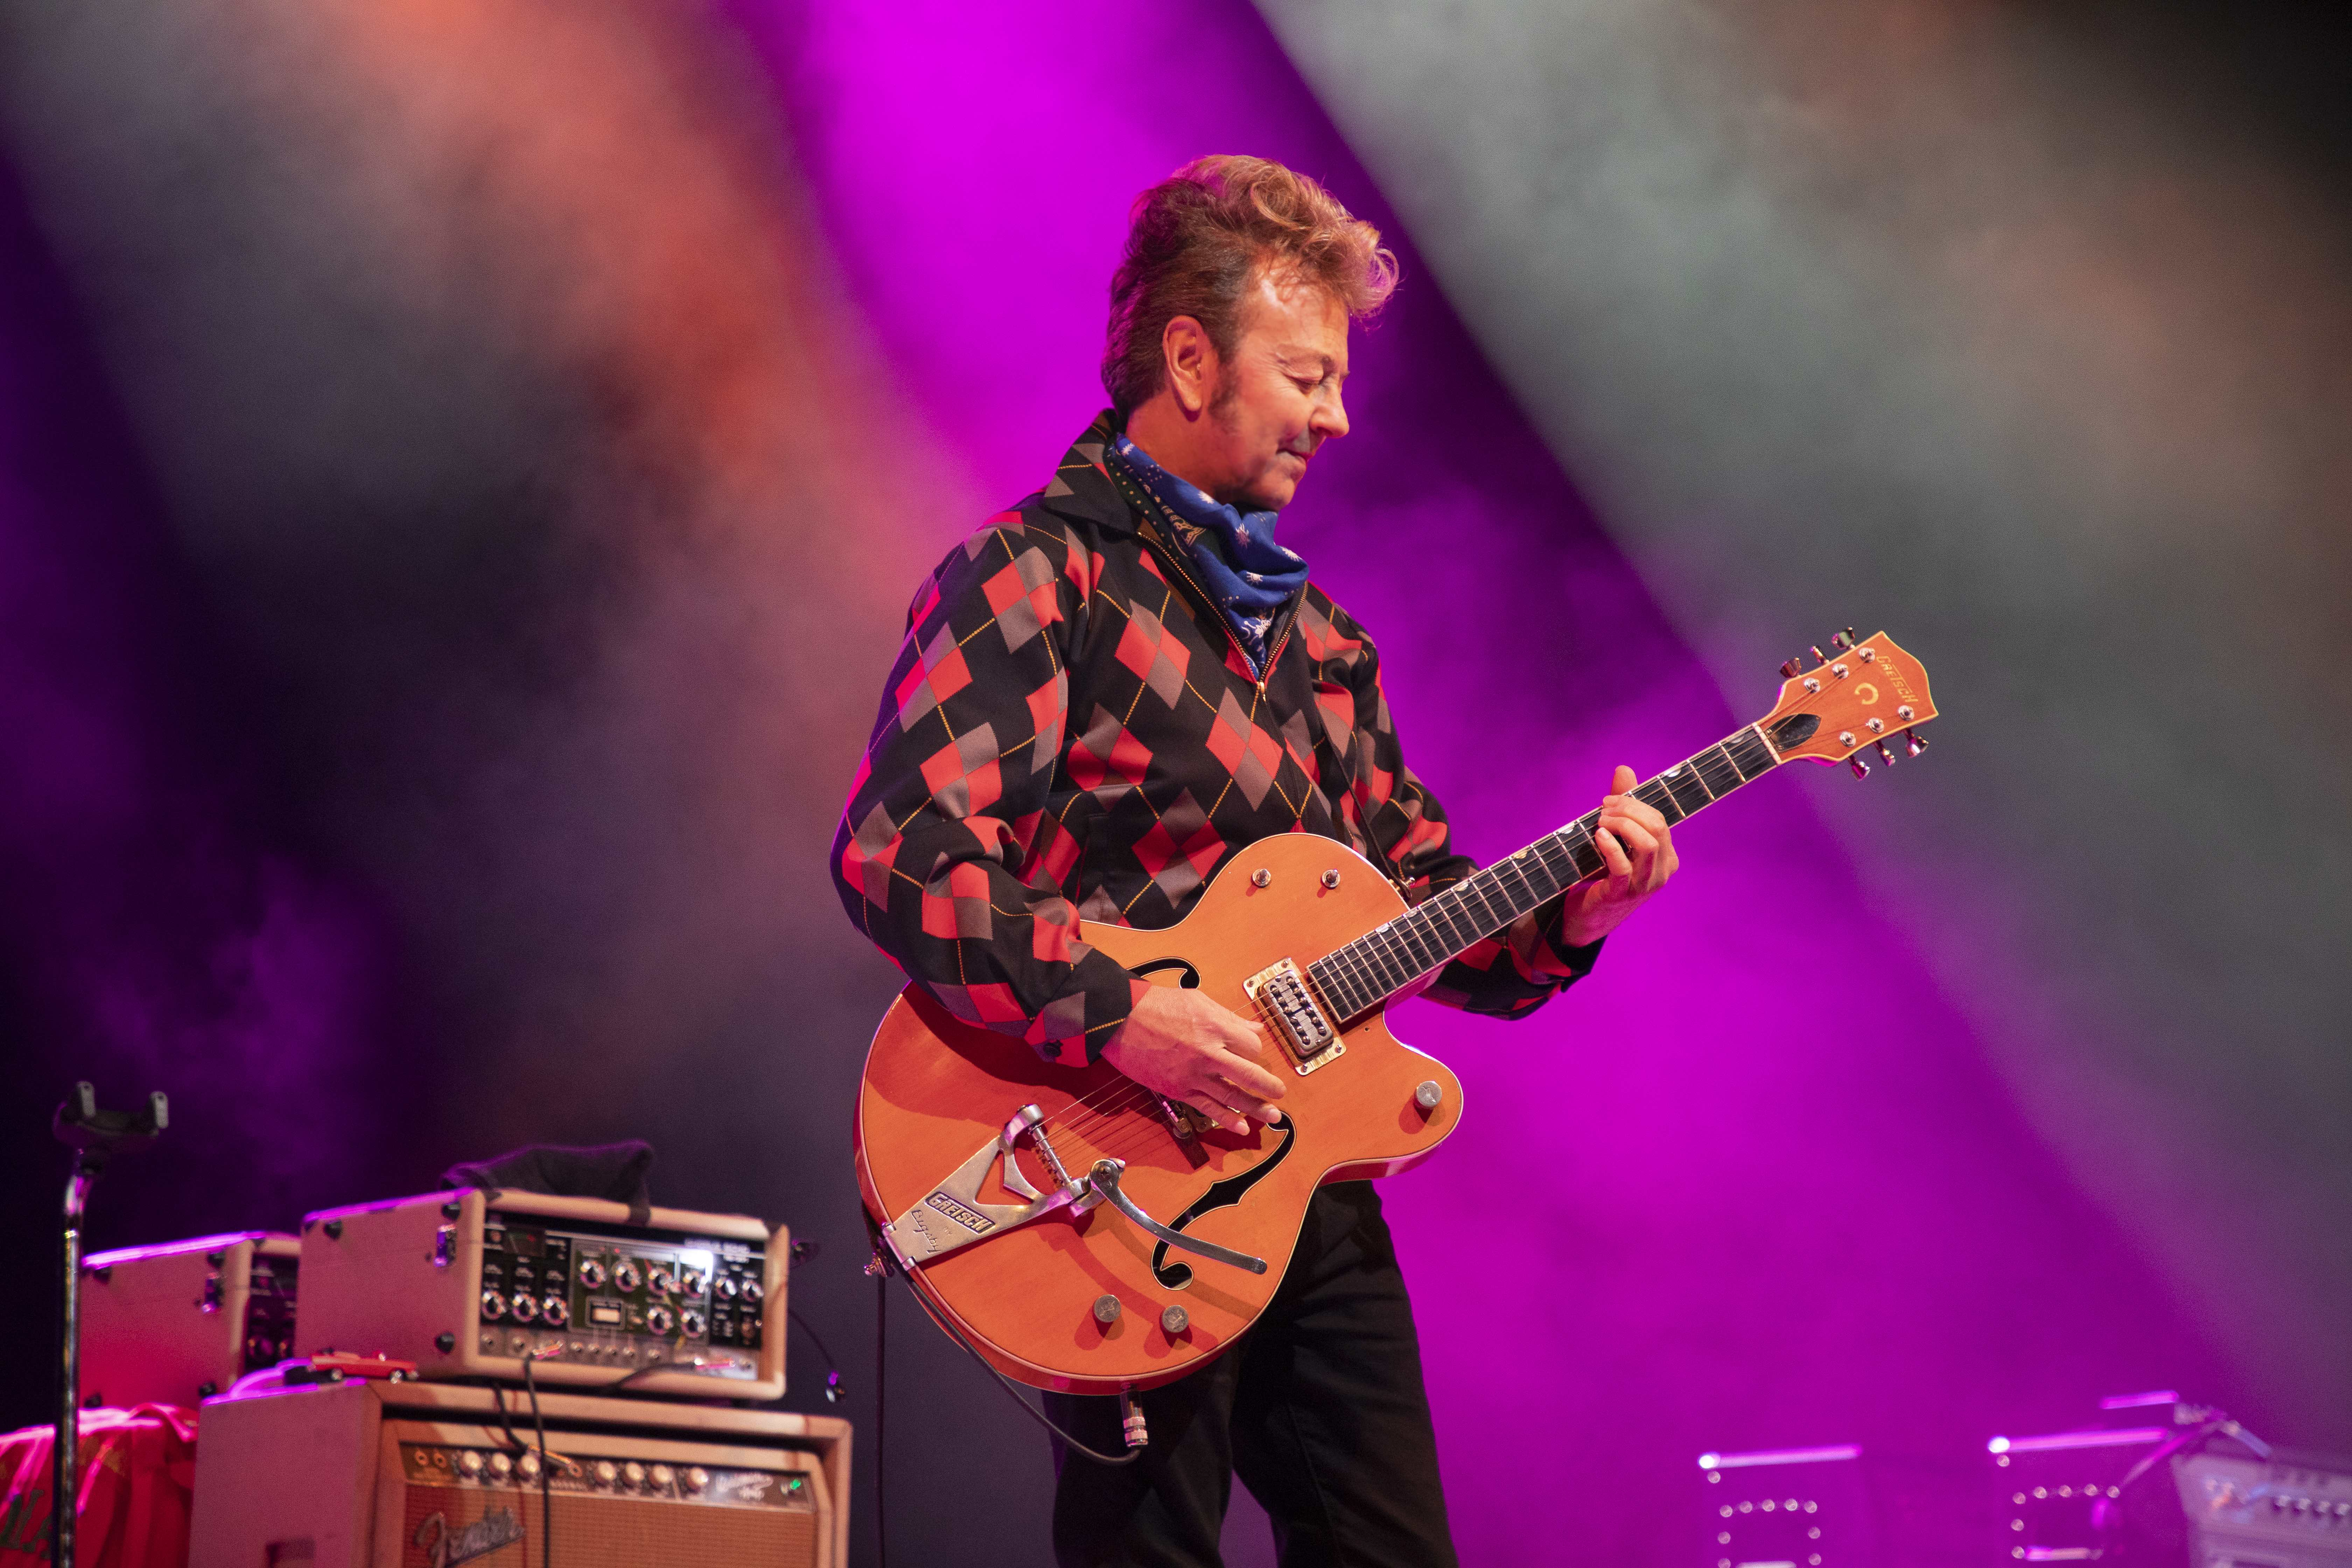 Tom 'TV' Jones and Guitar Tech Tyler Sweet Share Their Insight on Brian Setzer's 'Smoke'